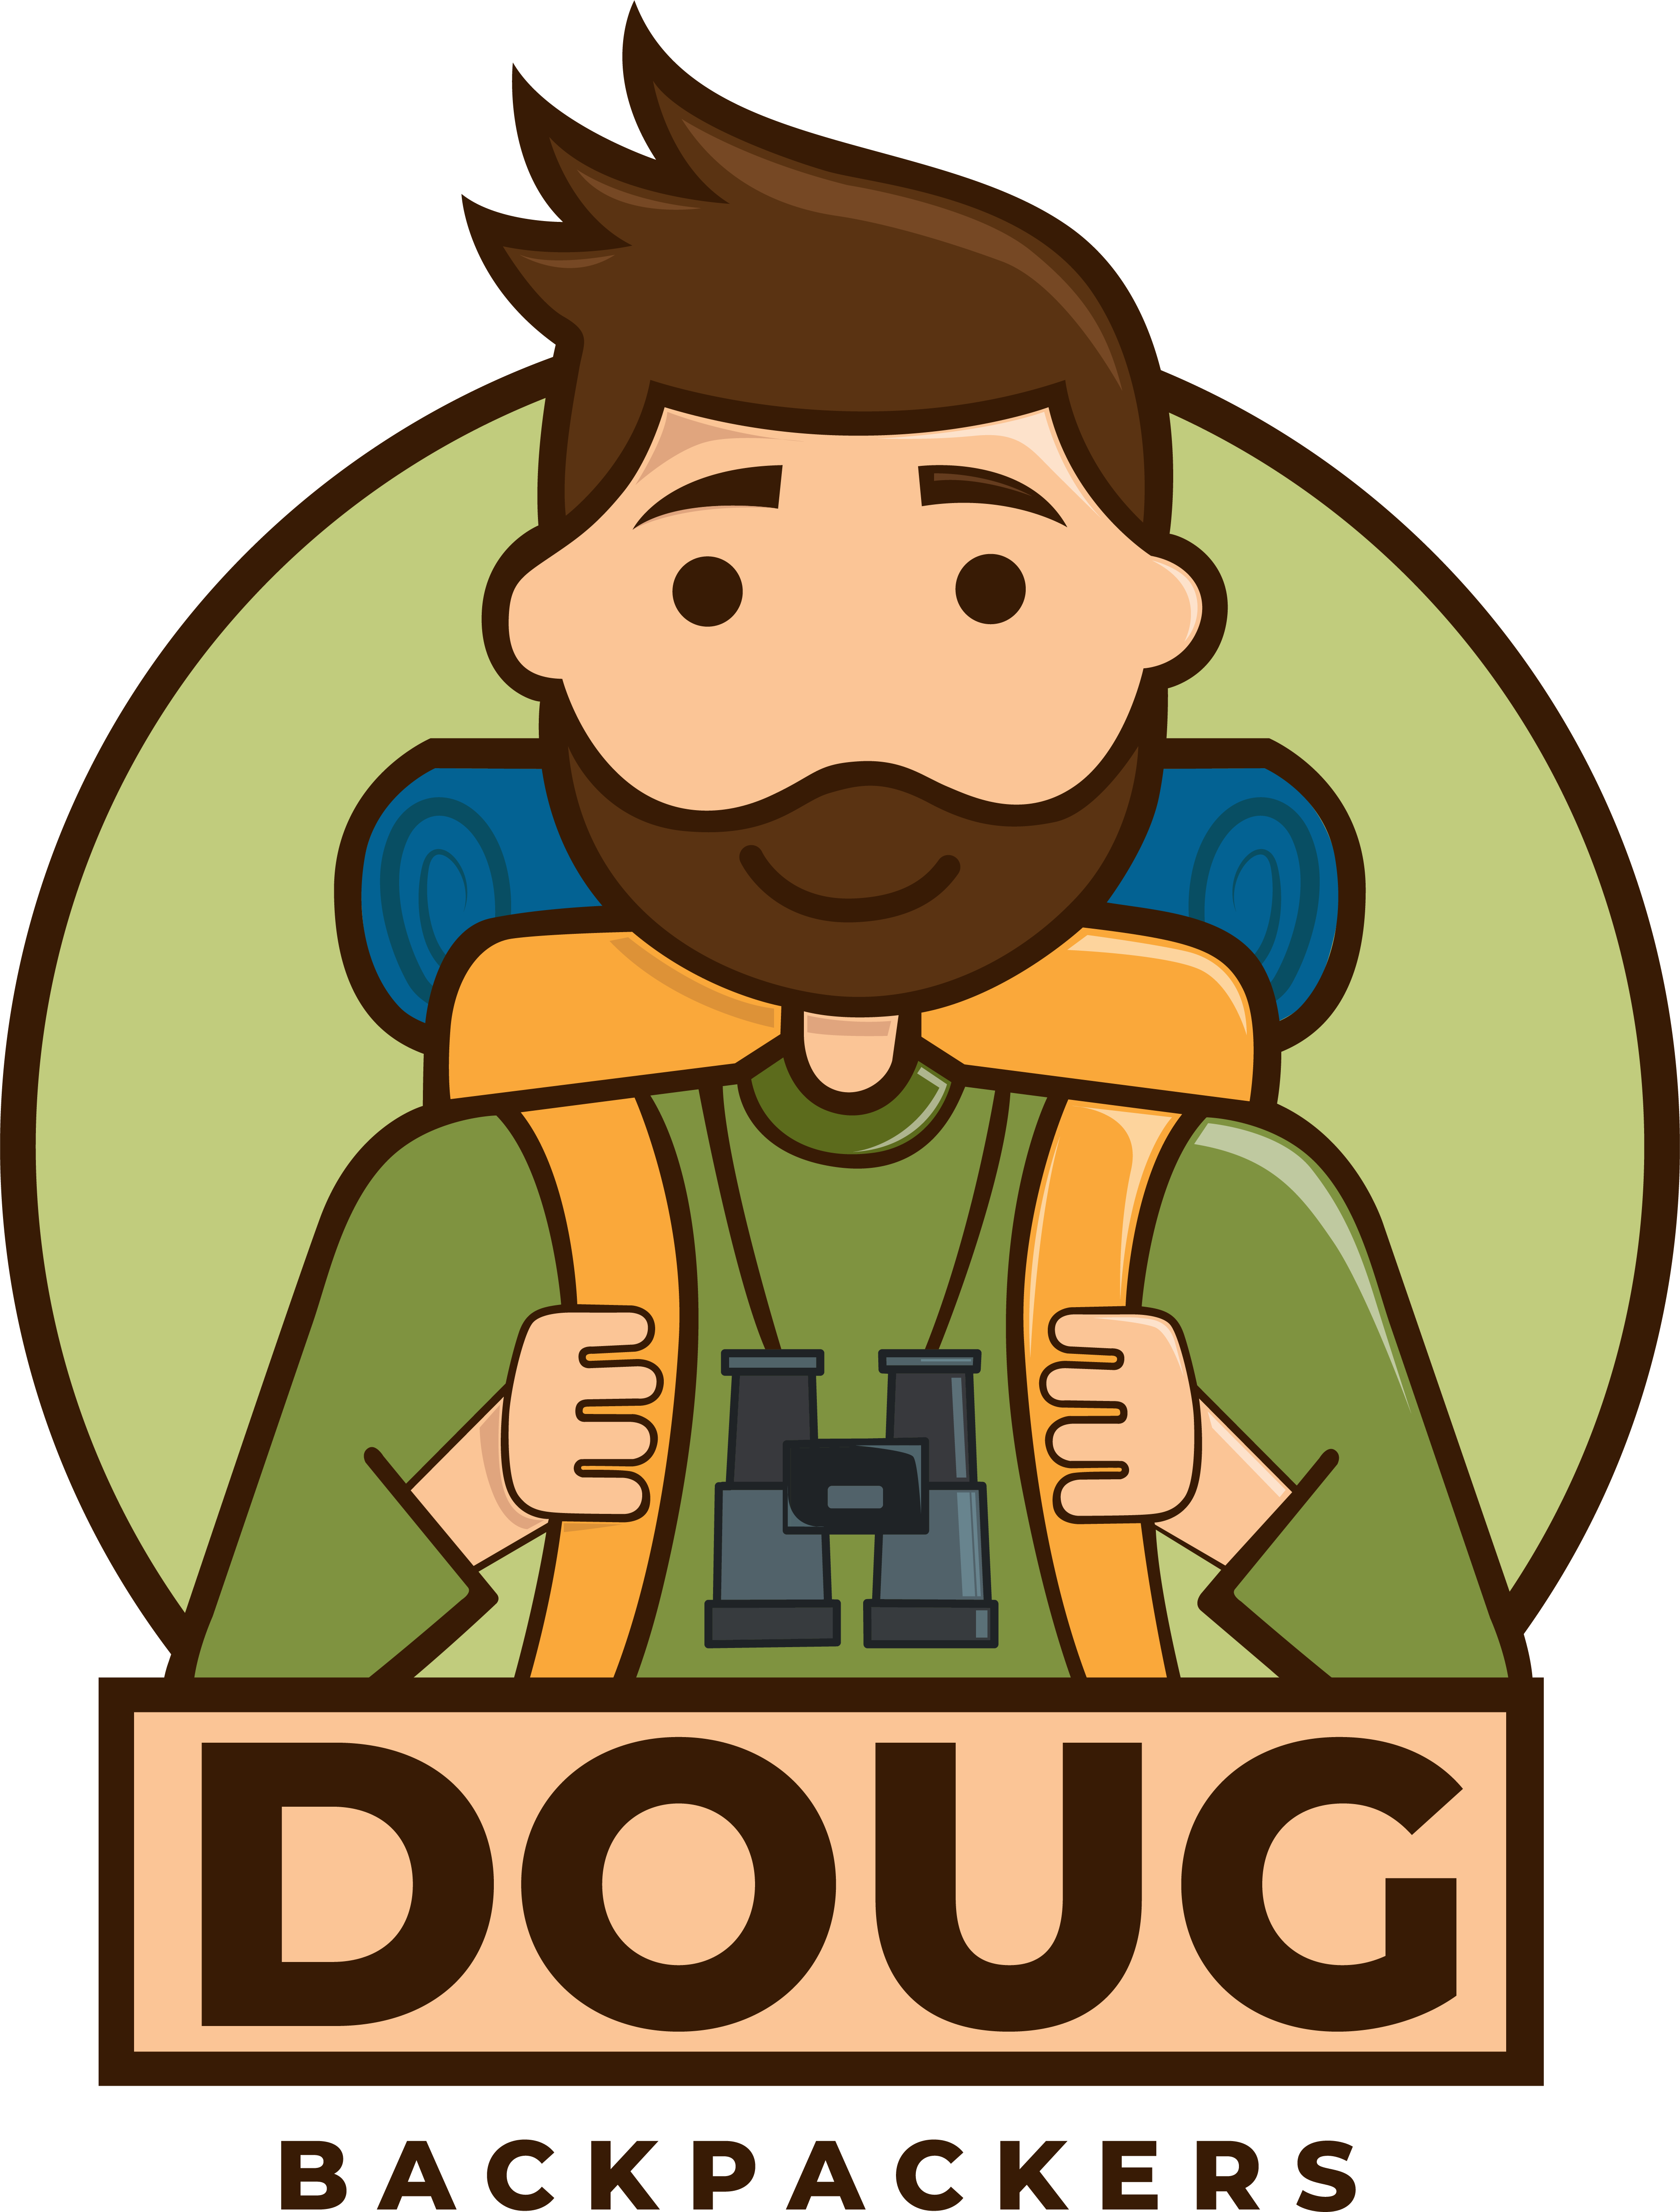 Doug Backpackers